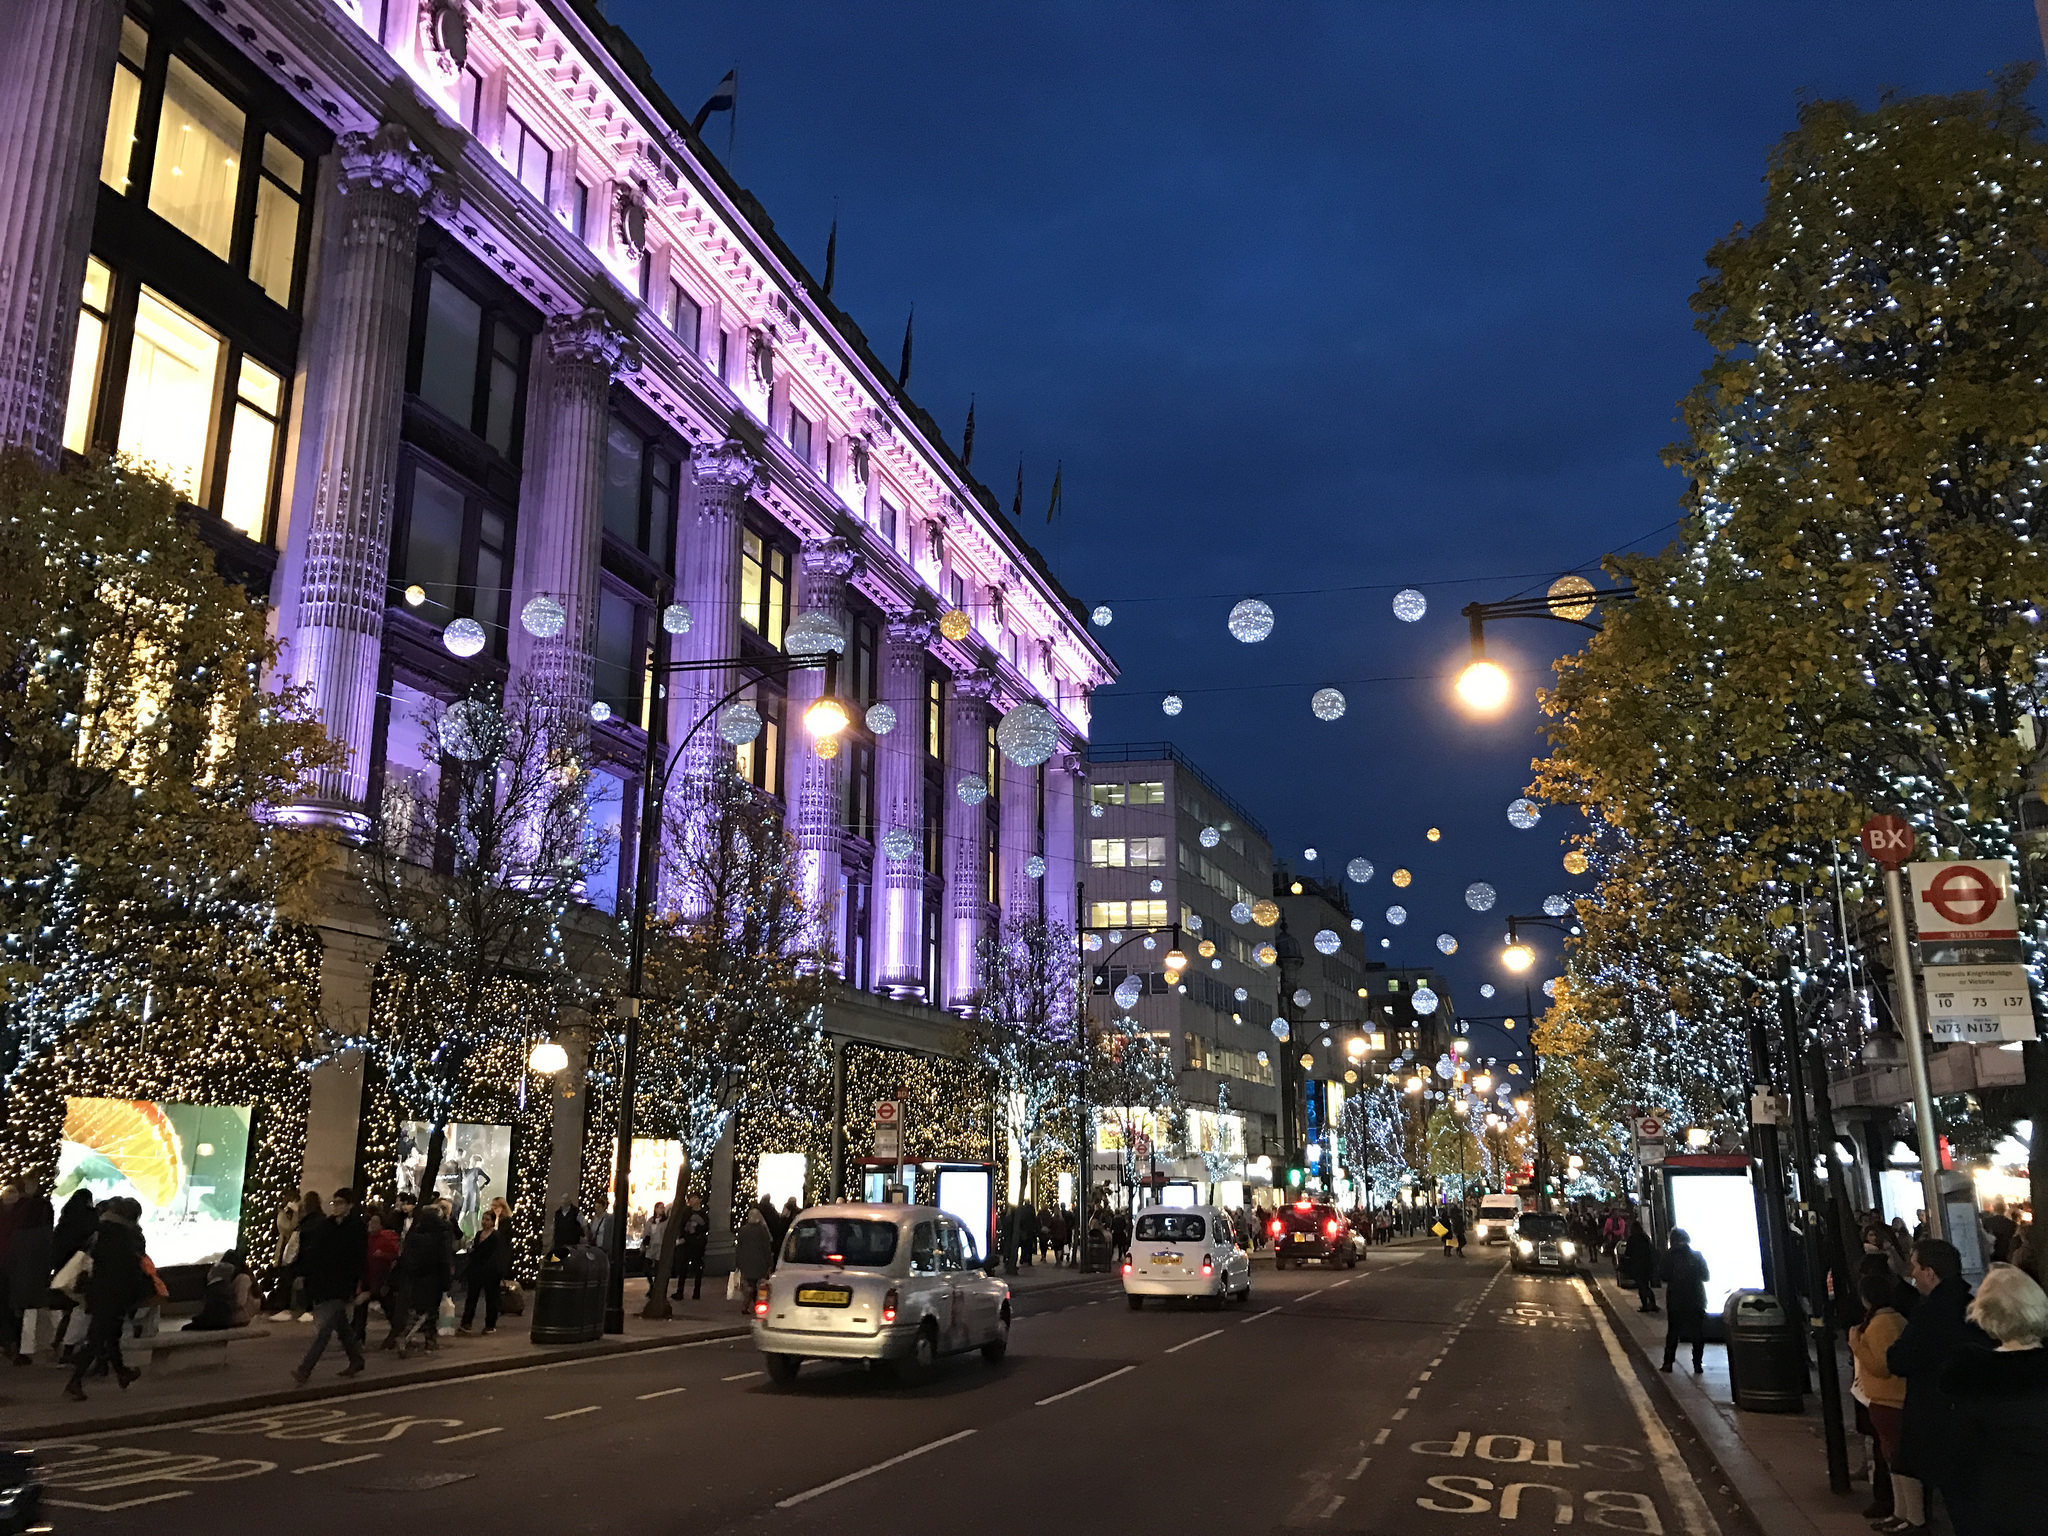 Christmas lights on Oxford Street in London